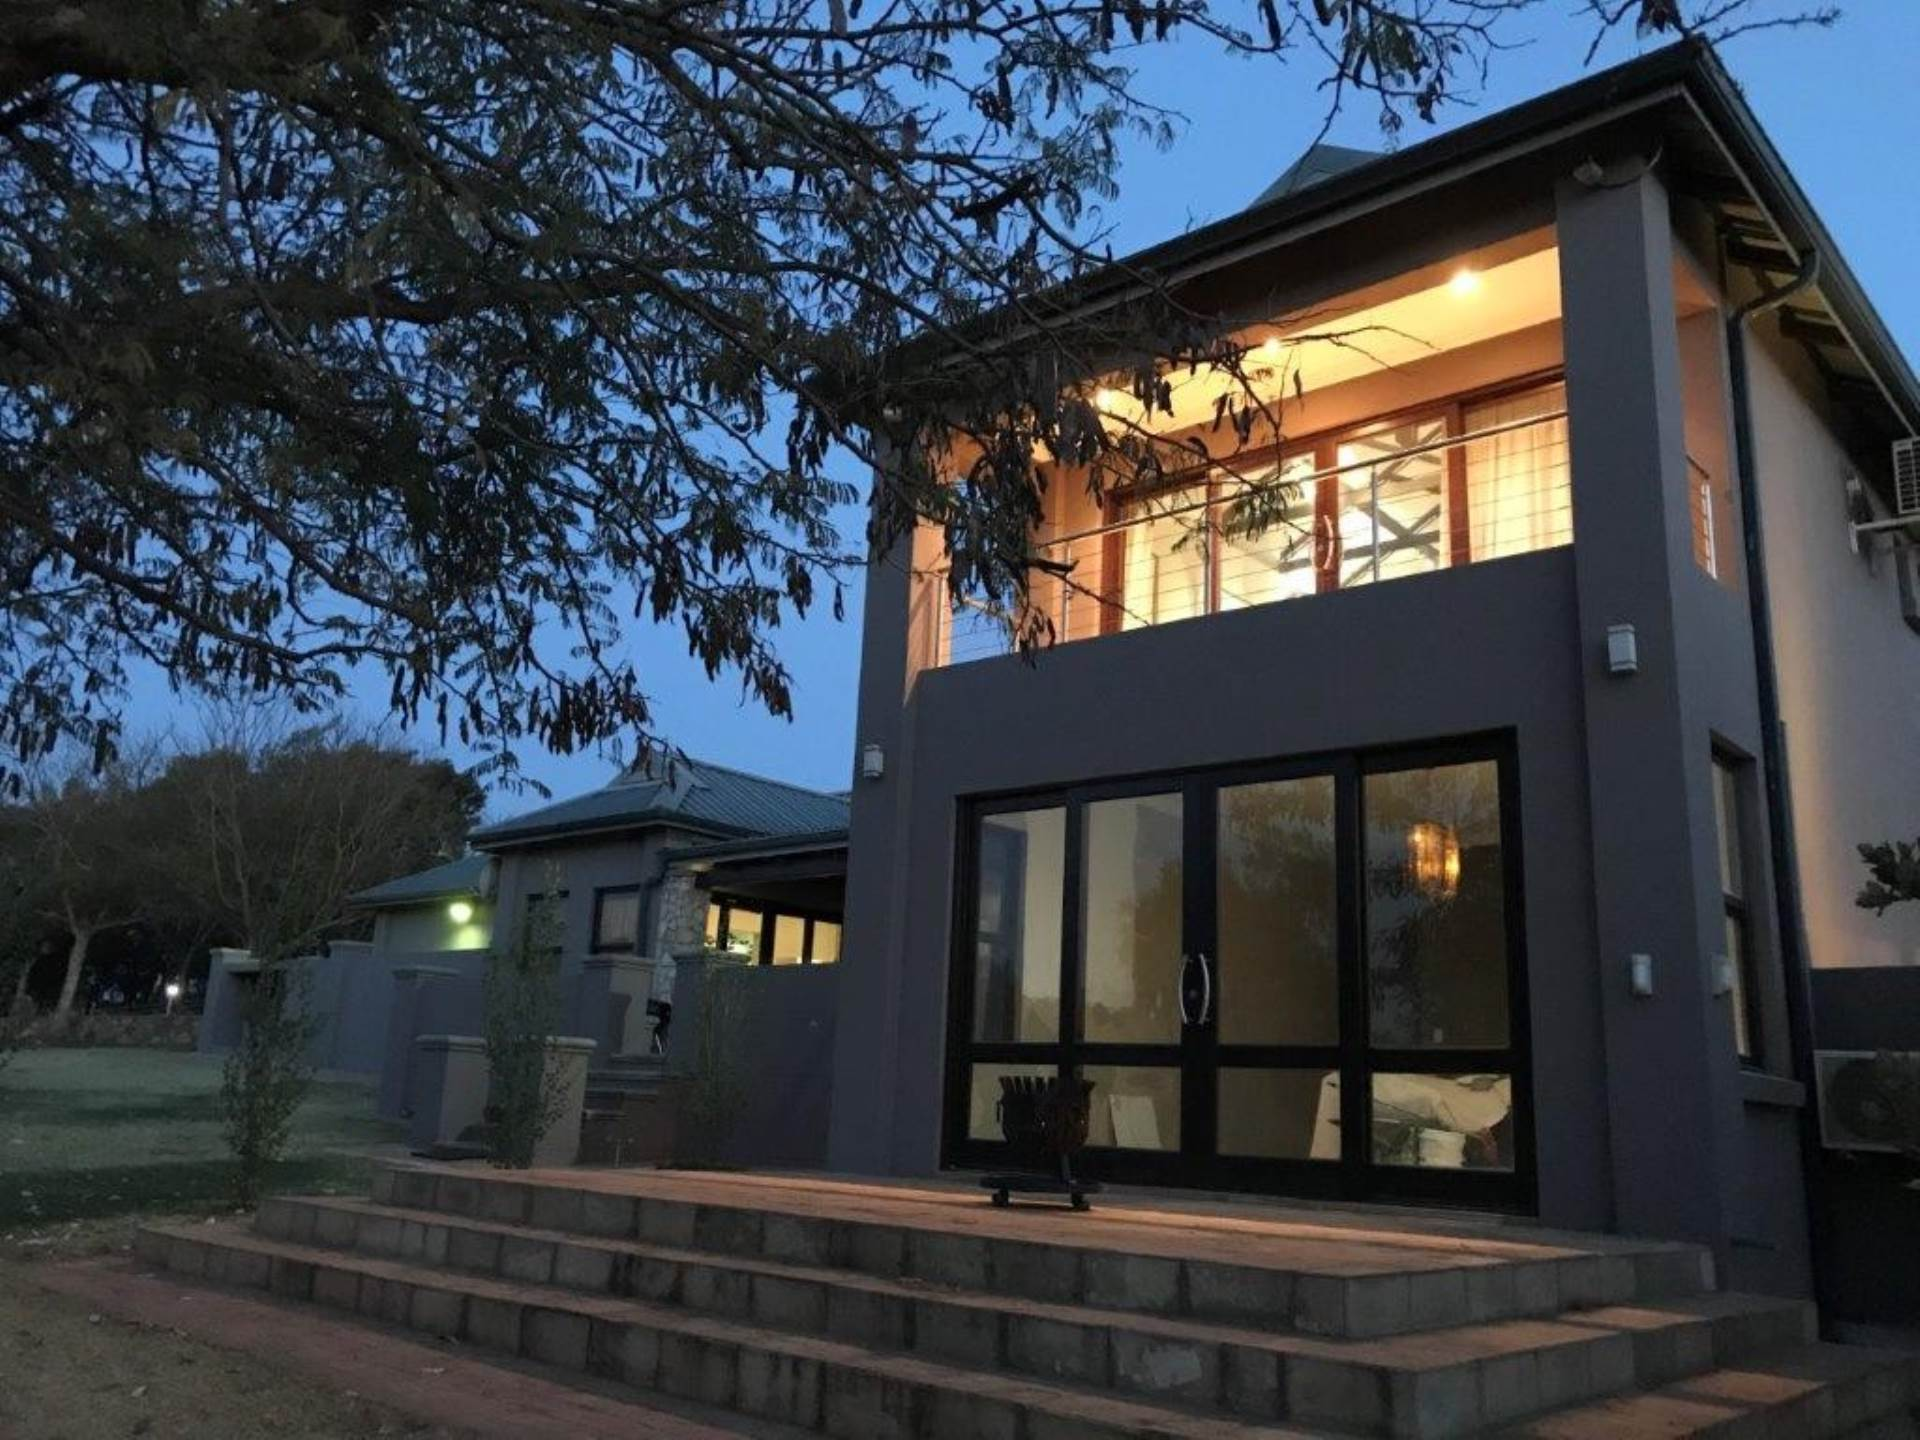 Rietvlei View Country Estate property for sale. Ref No: 13675032. Picture no 5